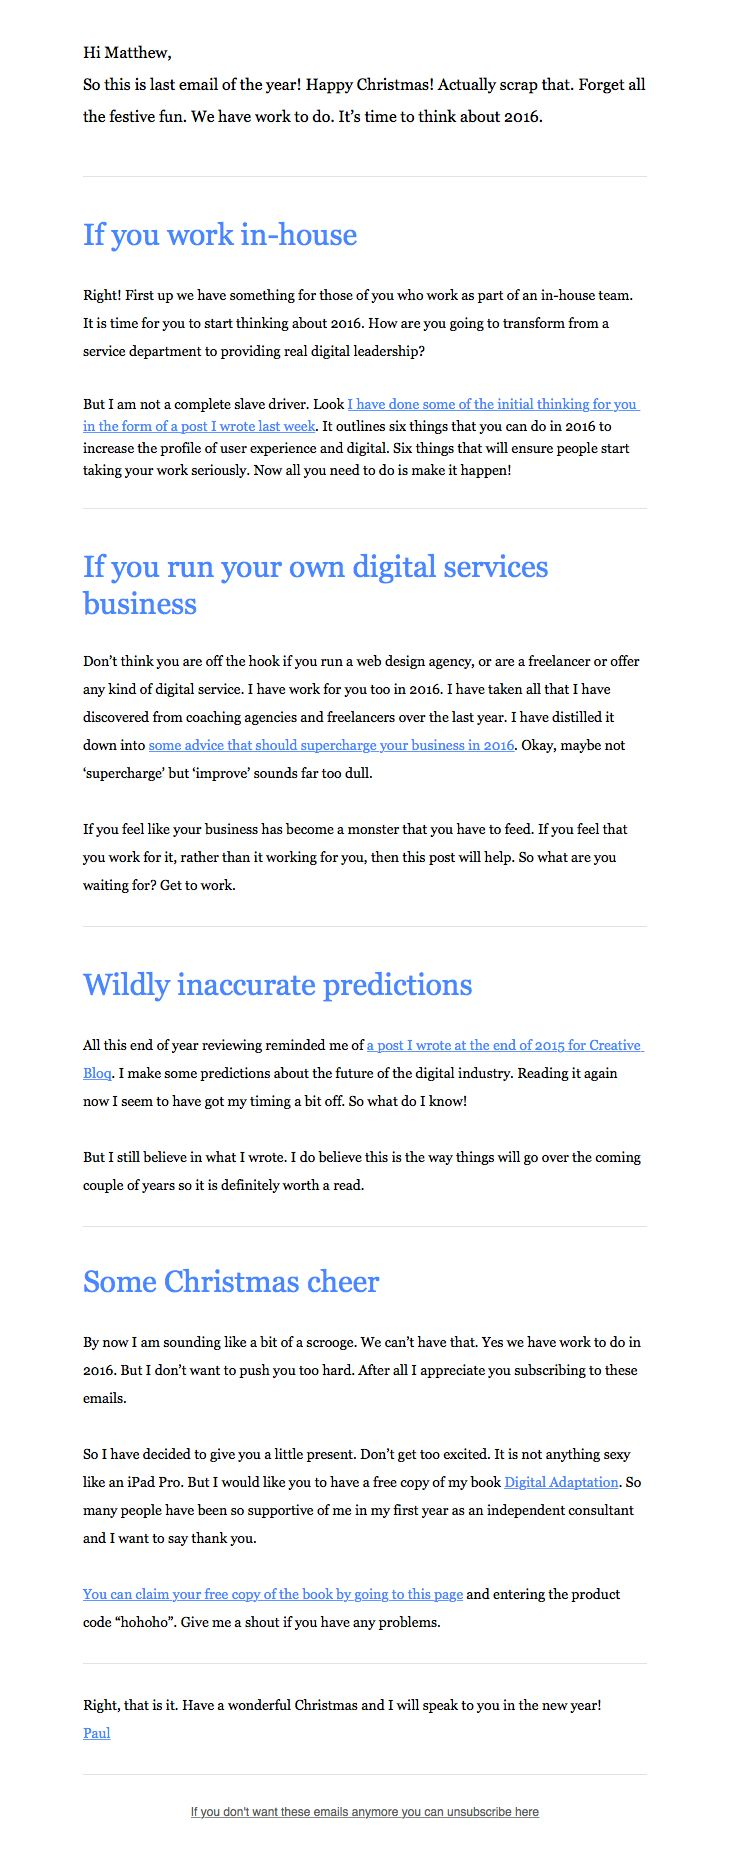 best onboarding emails images email design  boagworld sent this email the subject line forget christmas think about 2016